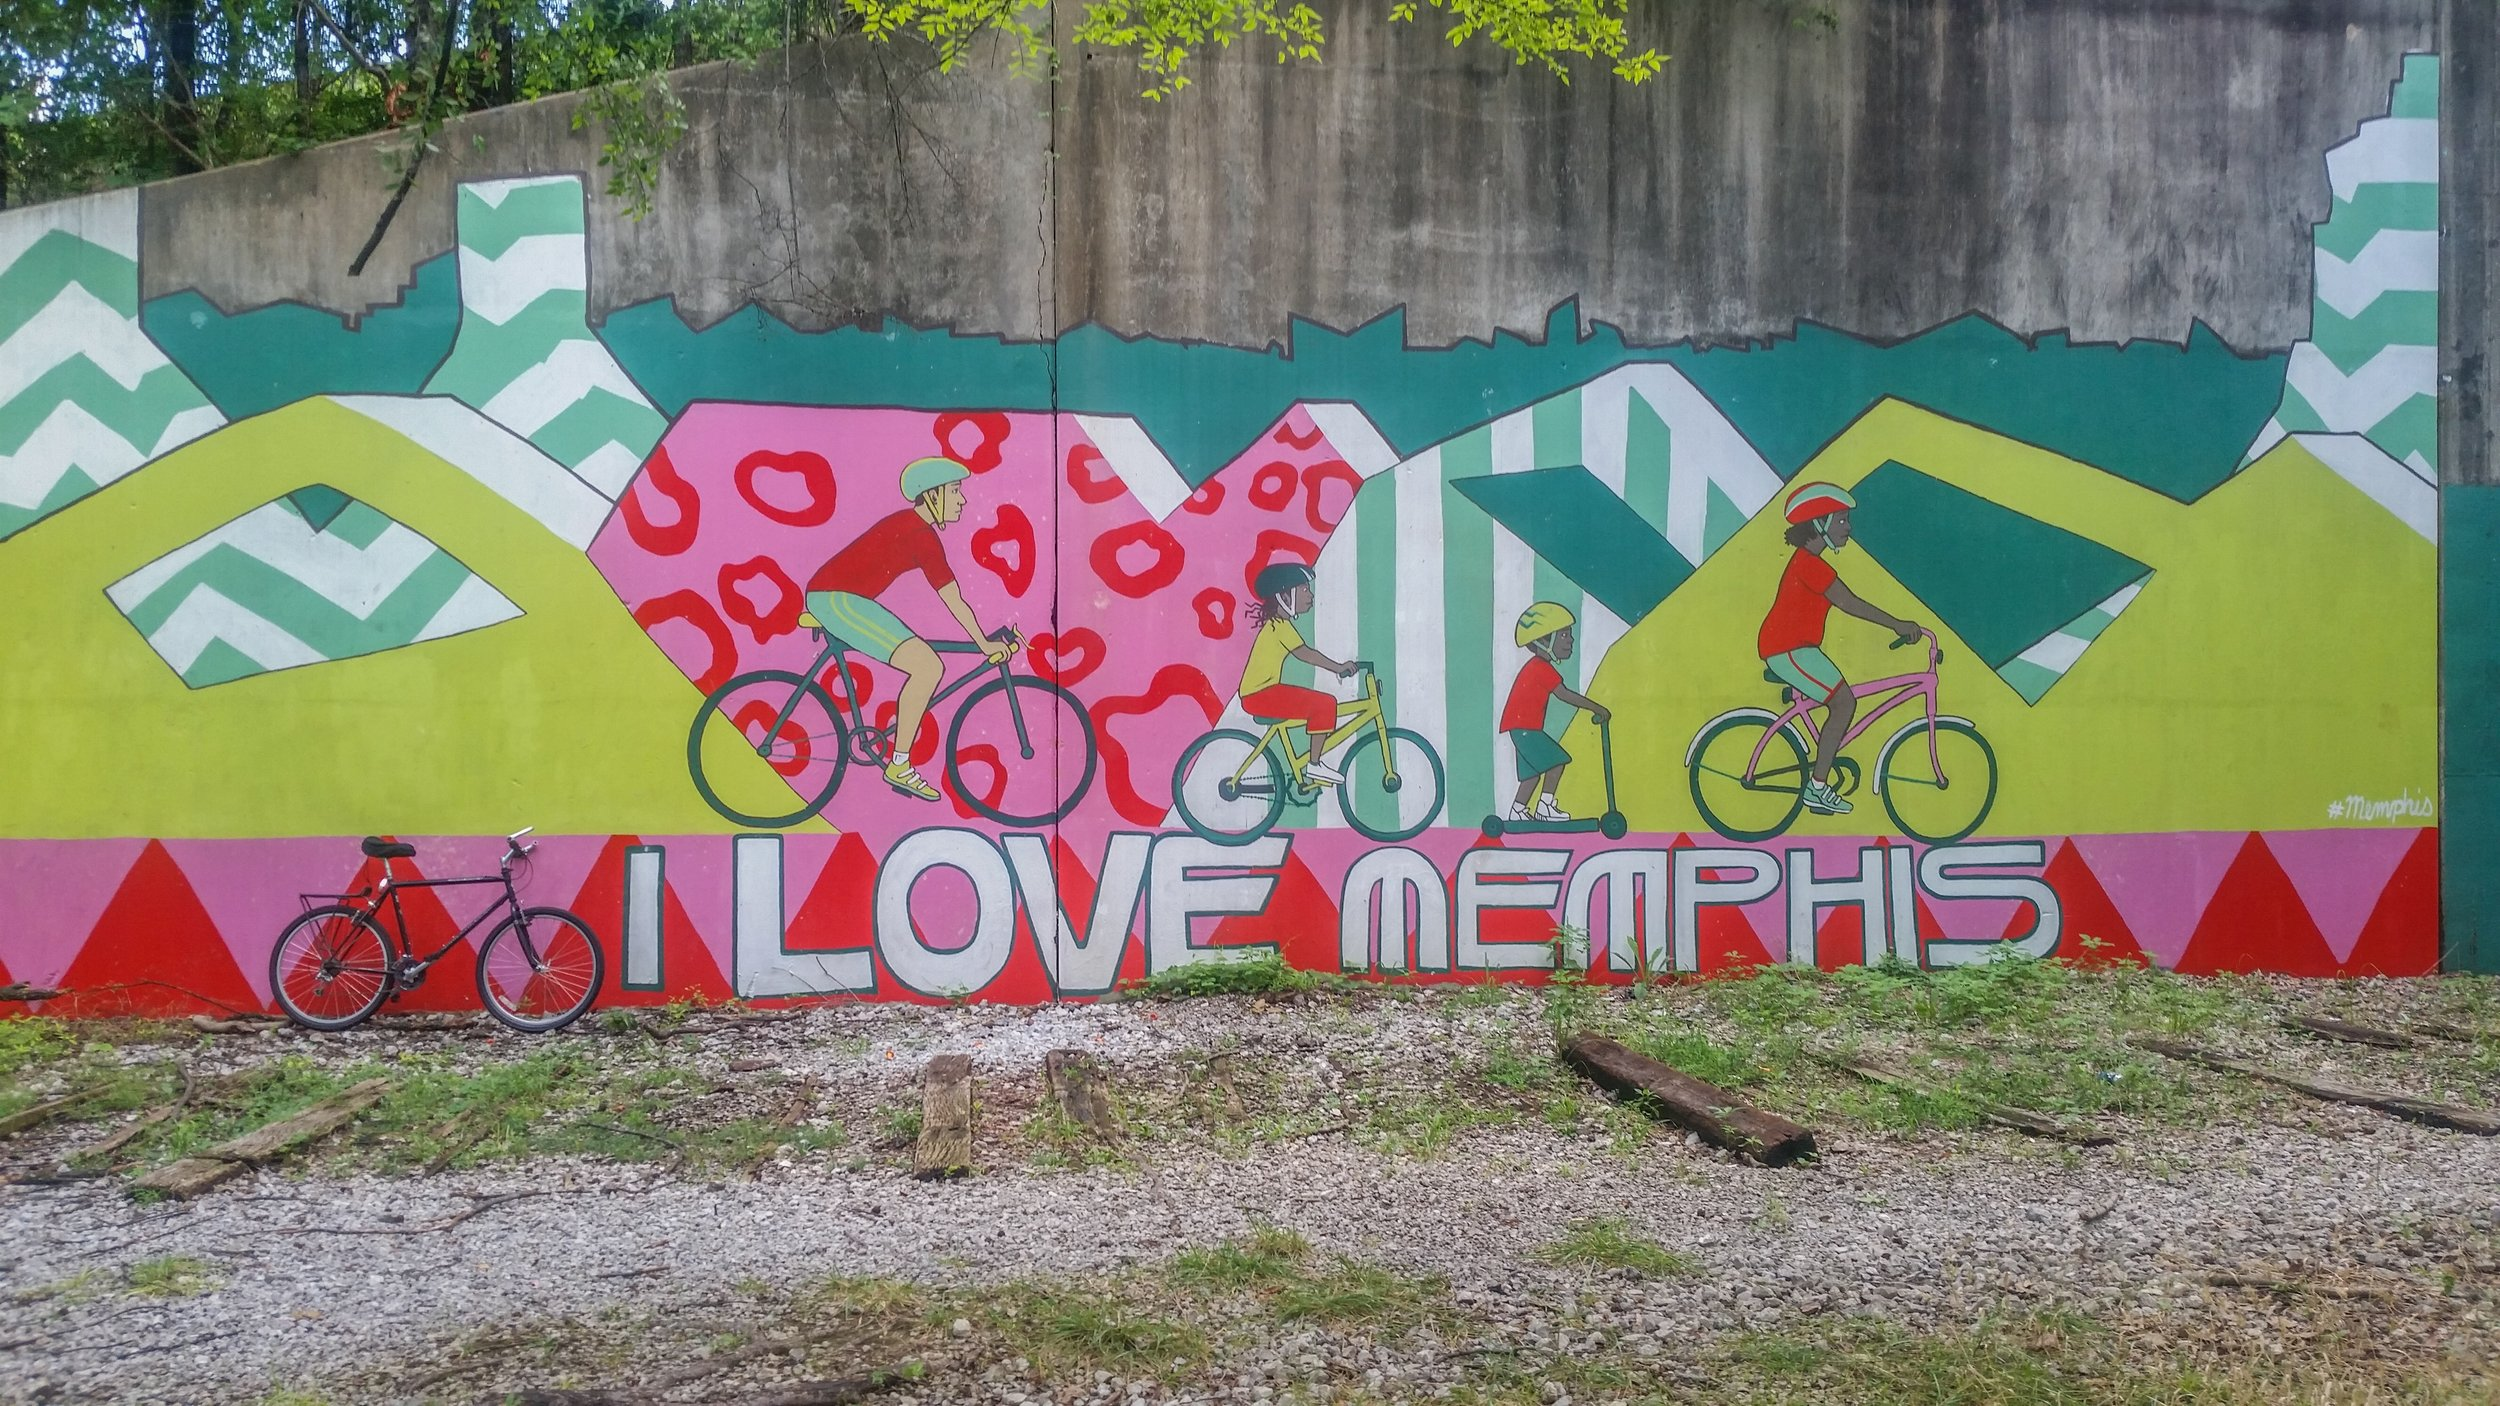 A bike mural I passed while biking through Shelby Farms